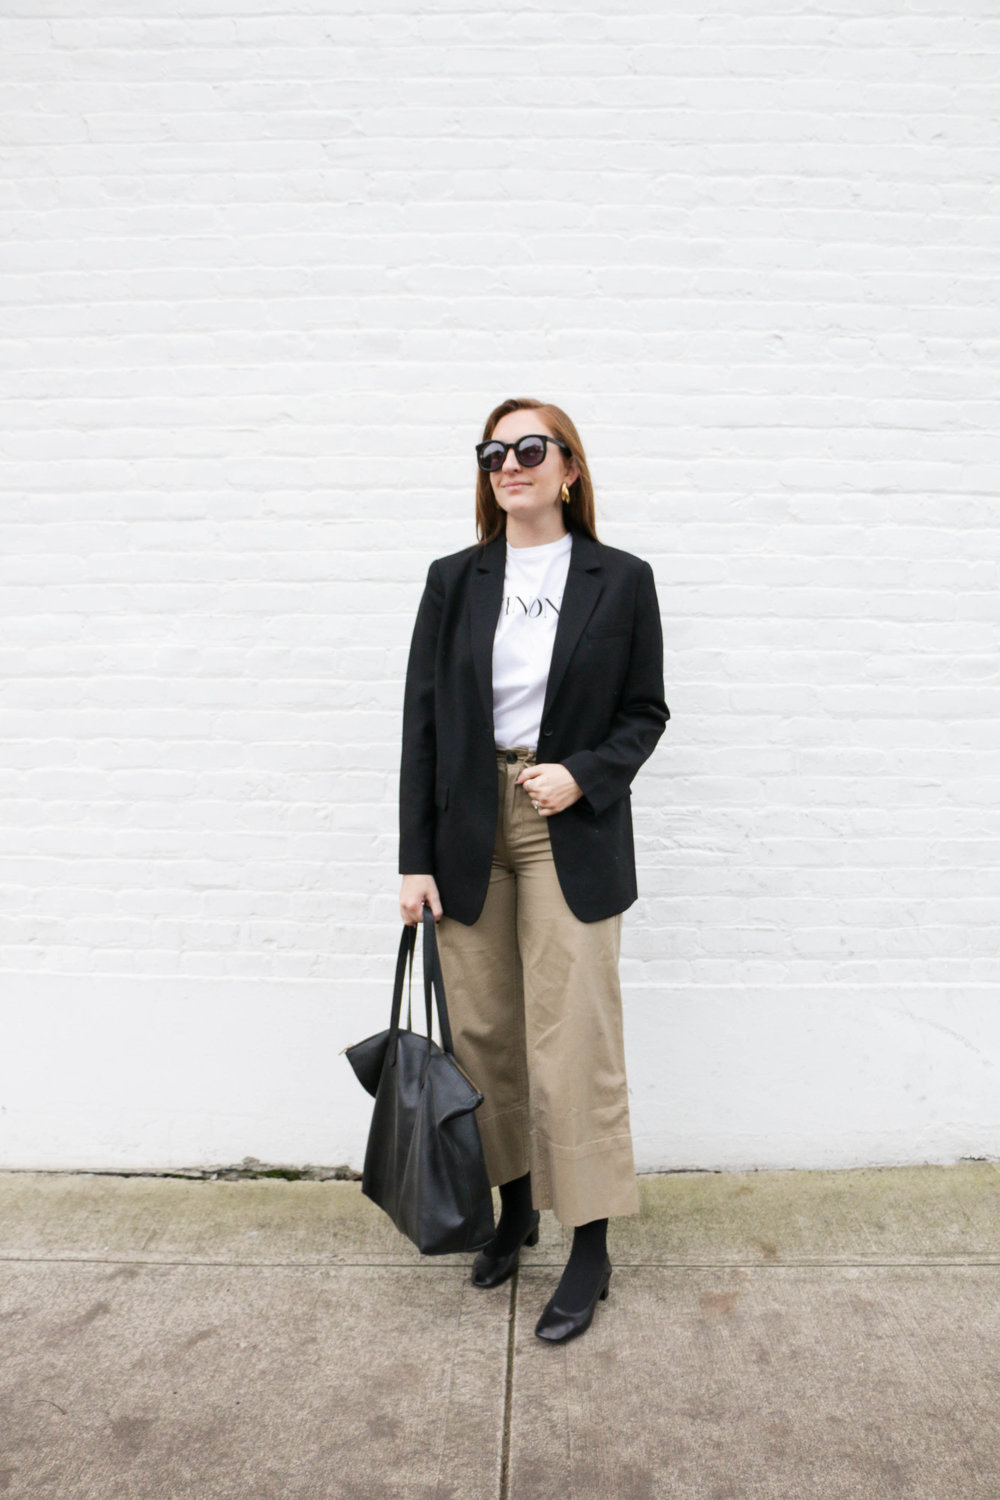 the-thoughtful-closet_everlane-oversized-blazer-review_-1.jpg